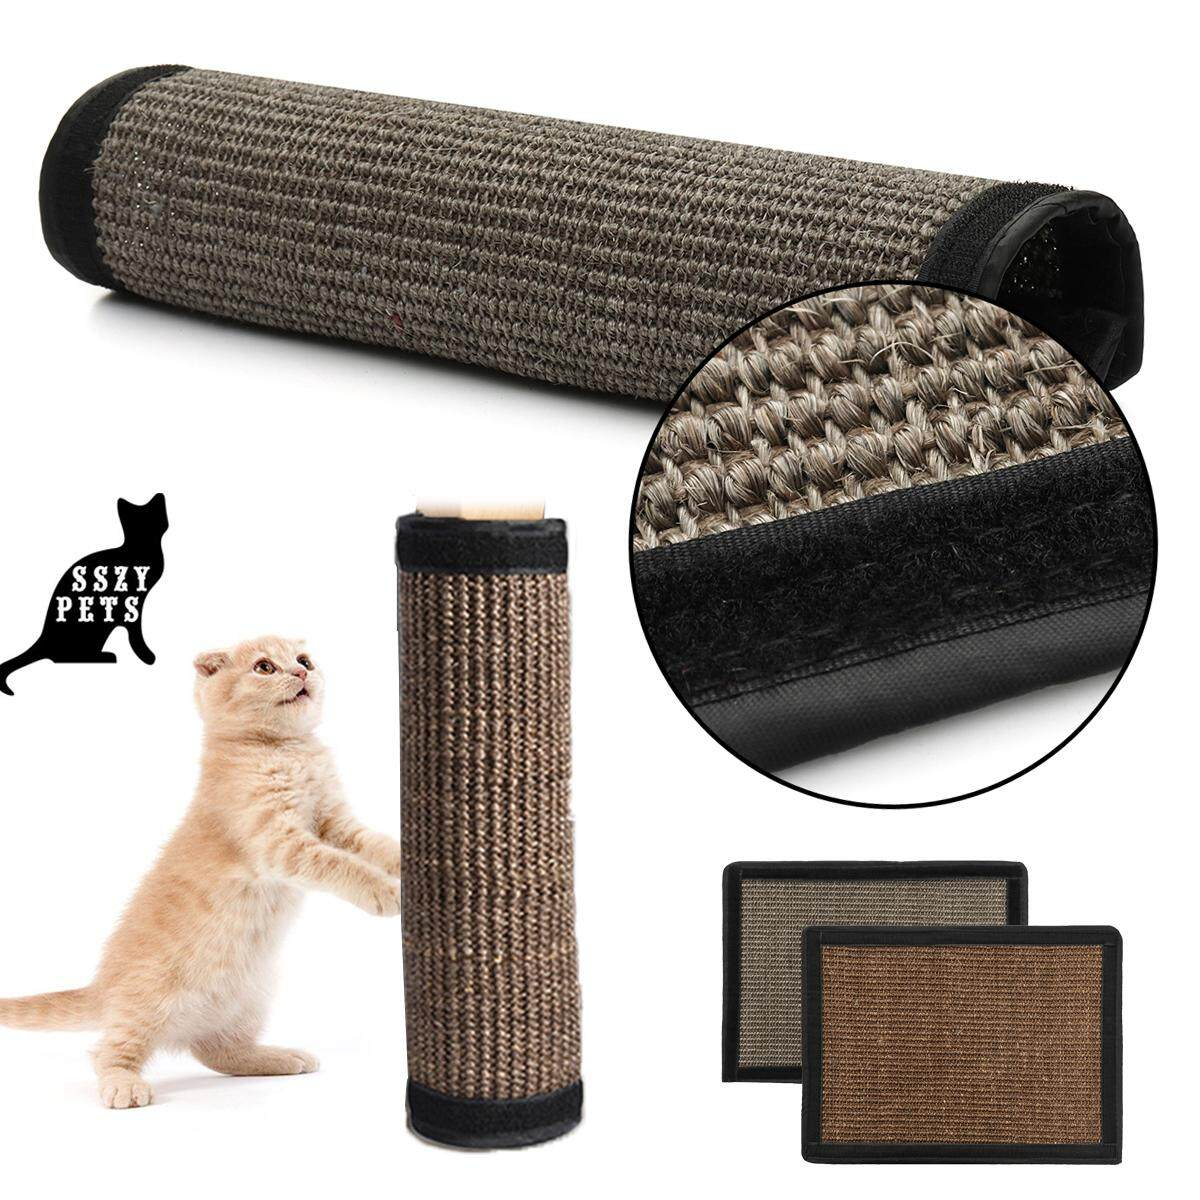 Where Can I Buy Pet Cat Sisal Hemp Pad Scratching Post Toy Board Furniture Protected Mat 40 30Cm Dark Grey Intl